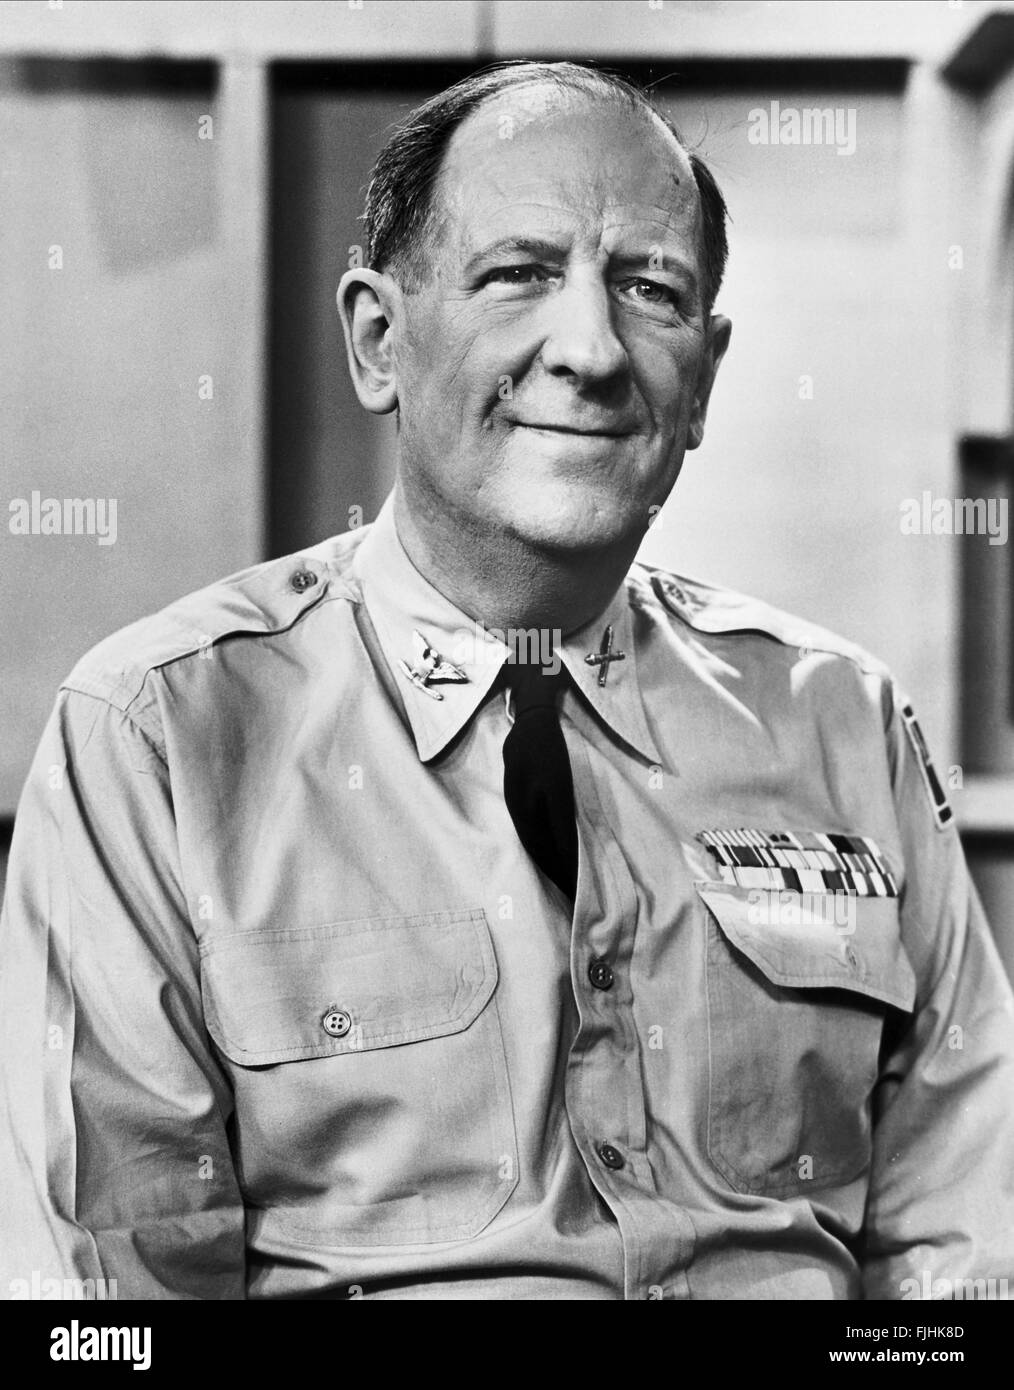 PAUL FORD THE PHIL SILVERS SHOW; SERGEANT BILKO (1955) - Stock Image